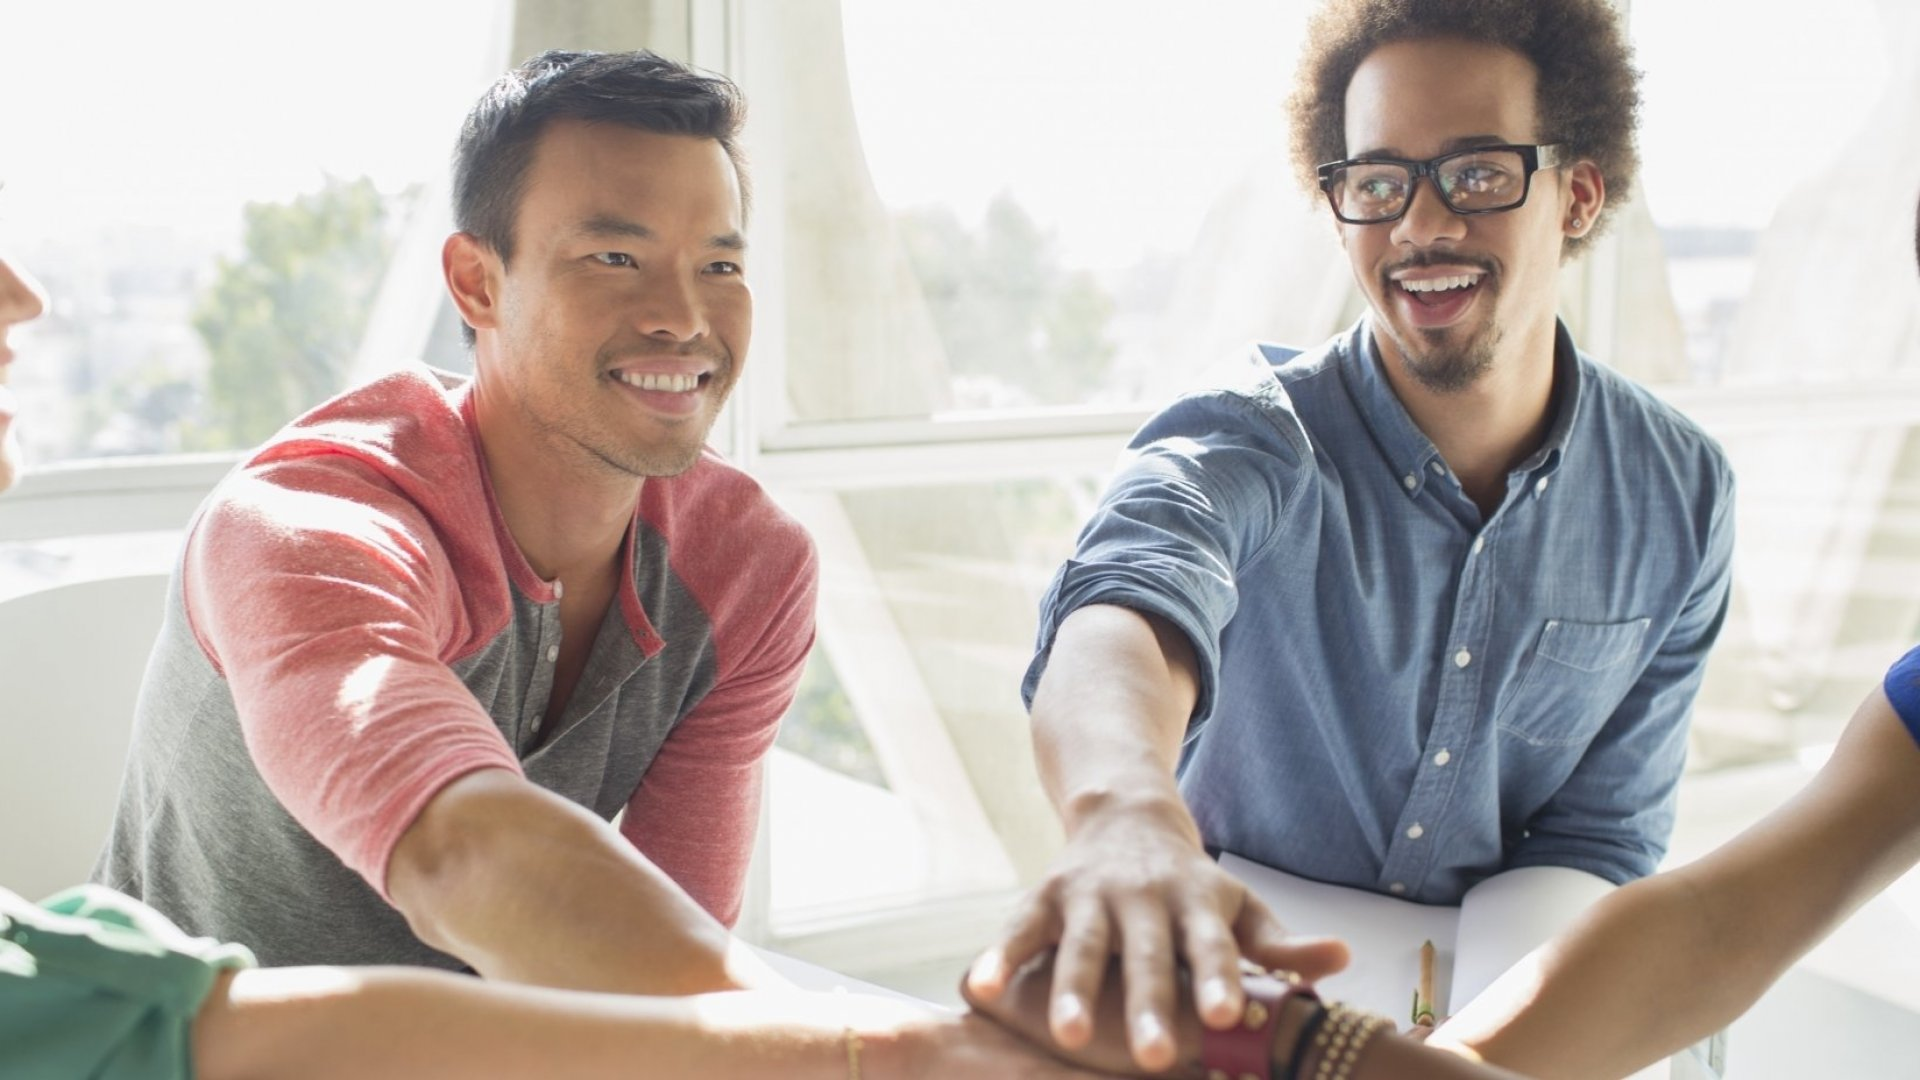 How to Build an Authentic, Award-Winning Culture